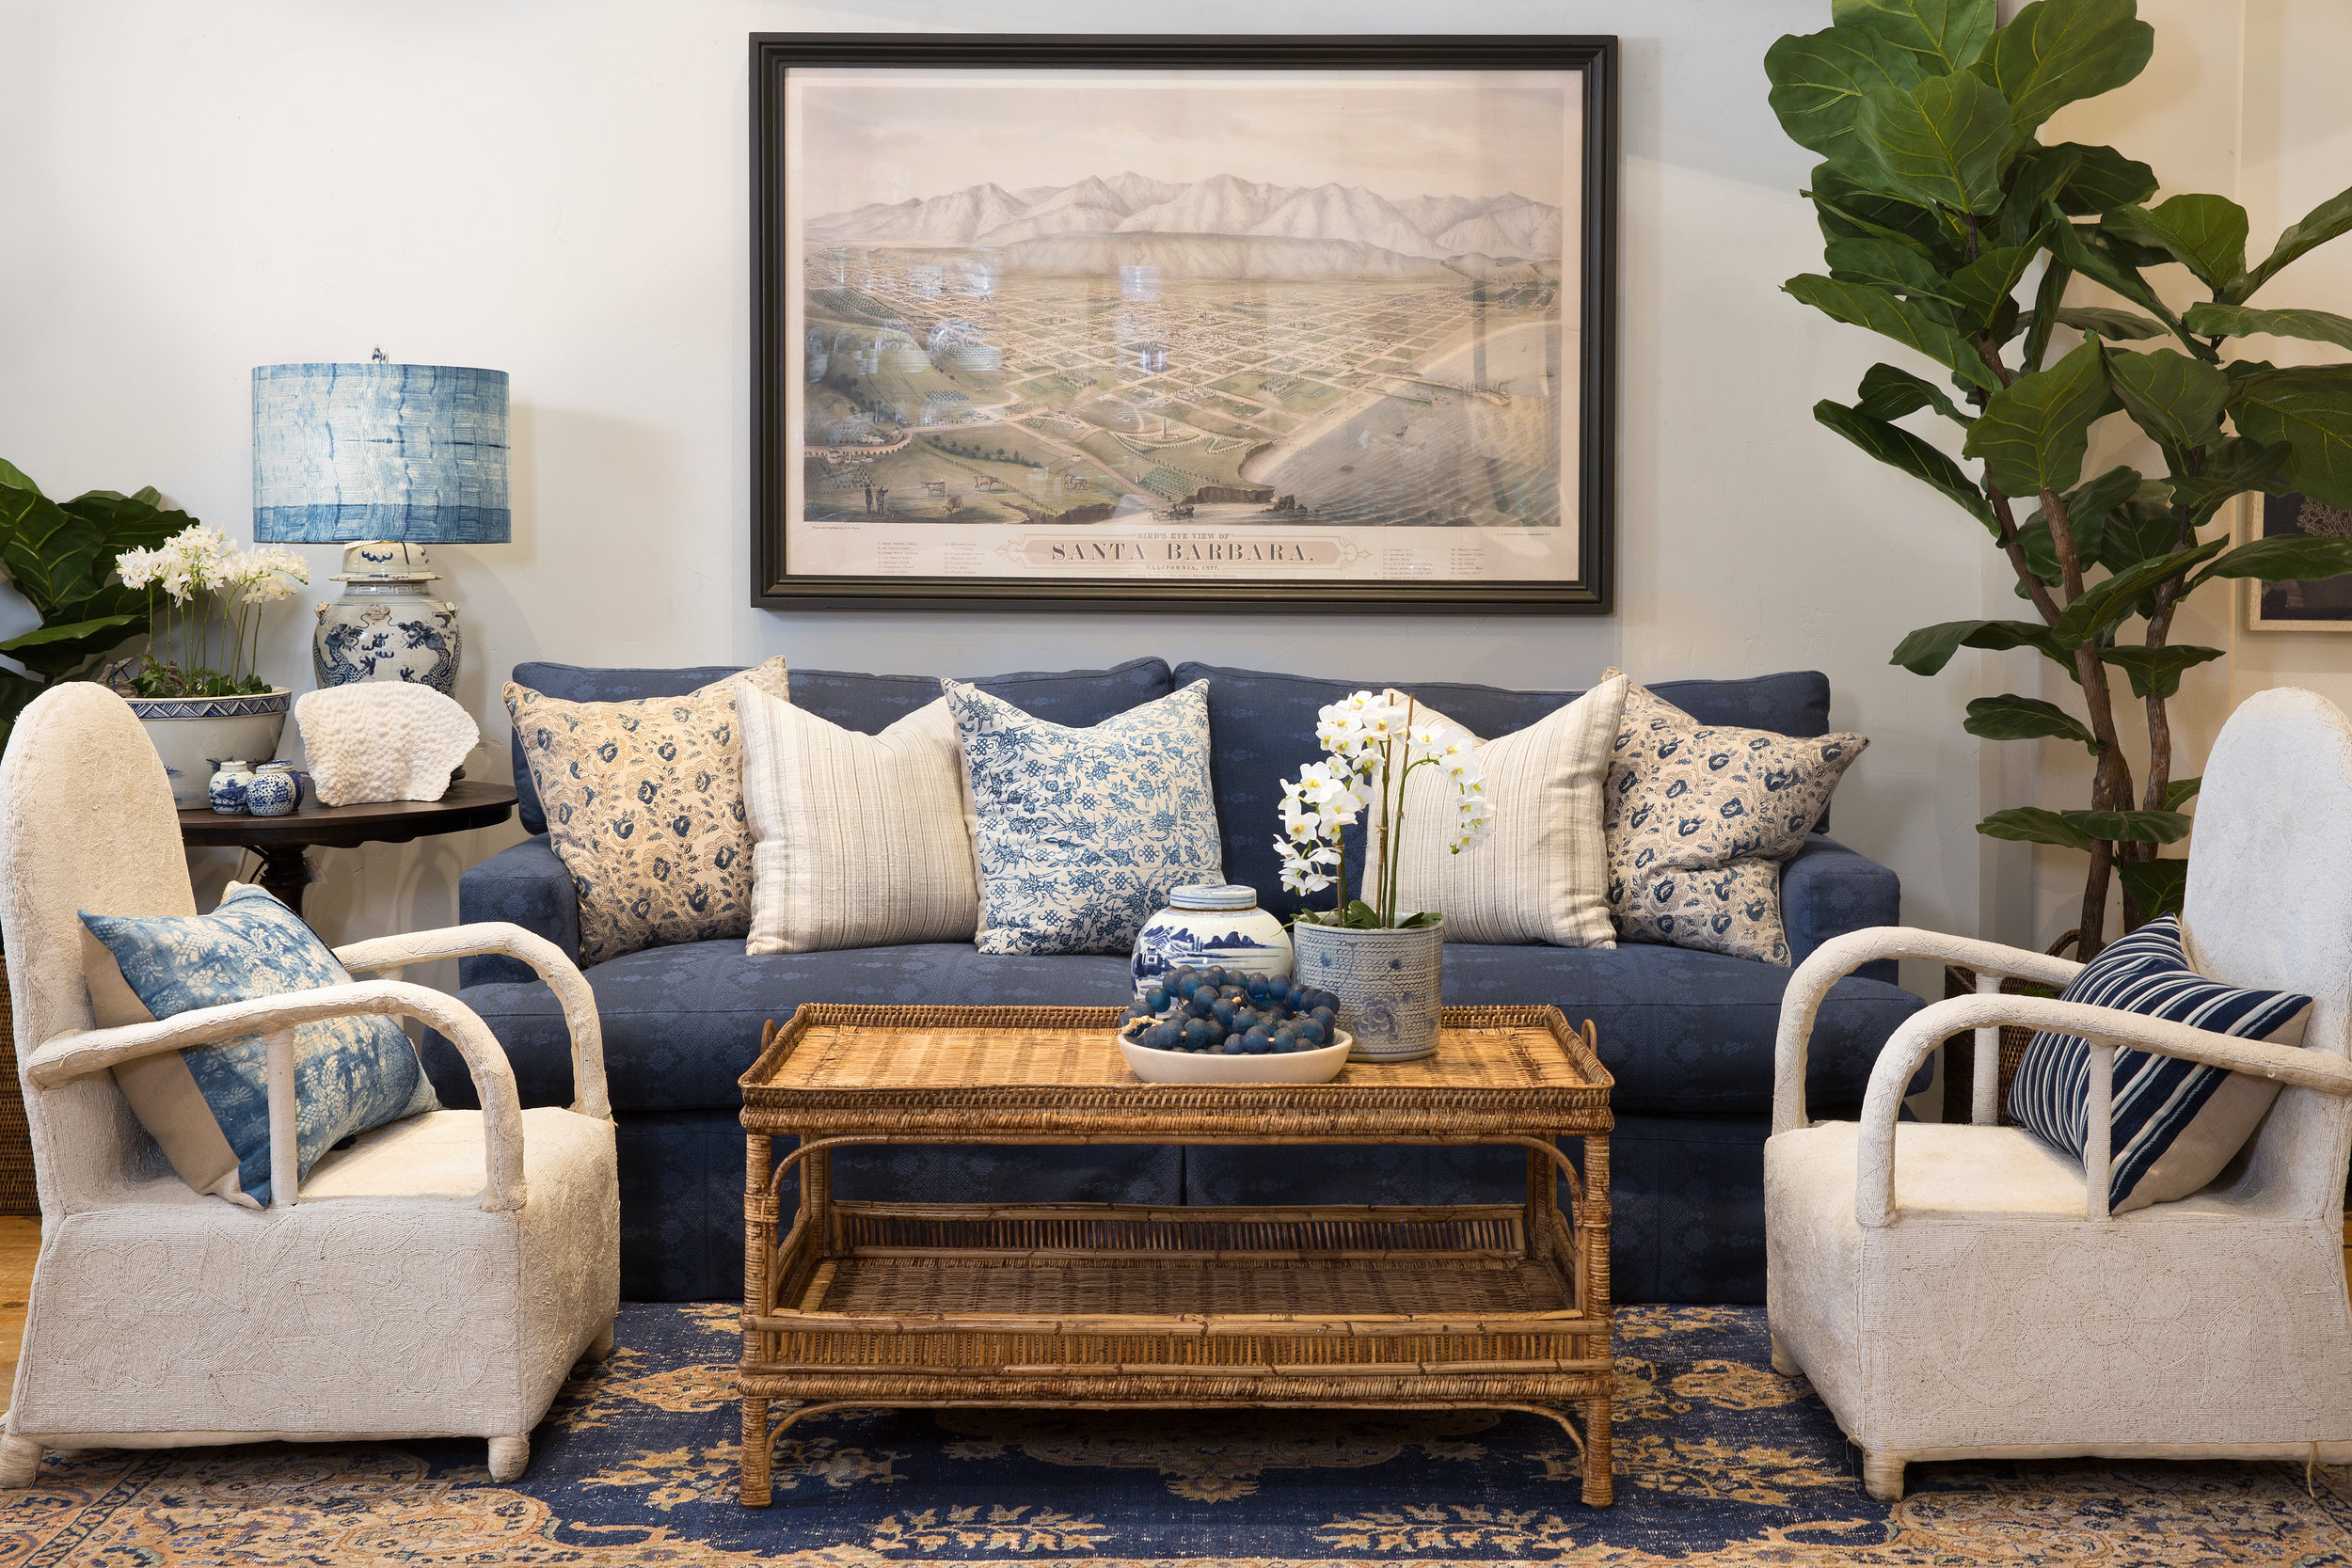 Coastal room featuring the Summerland Sofa from Rooms & Gardens